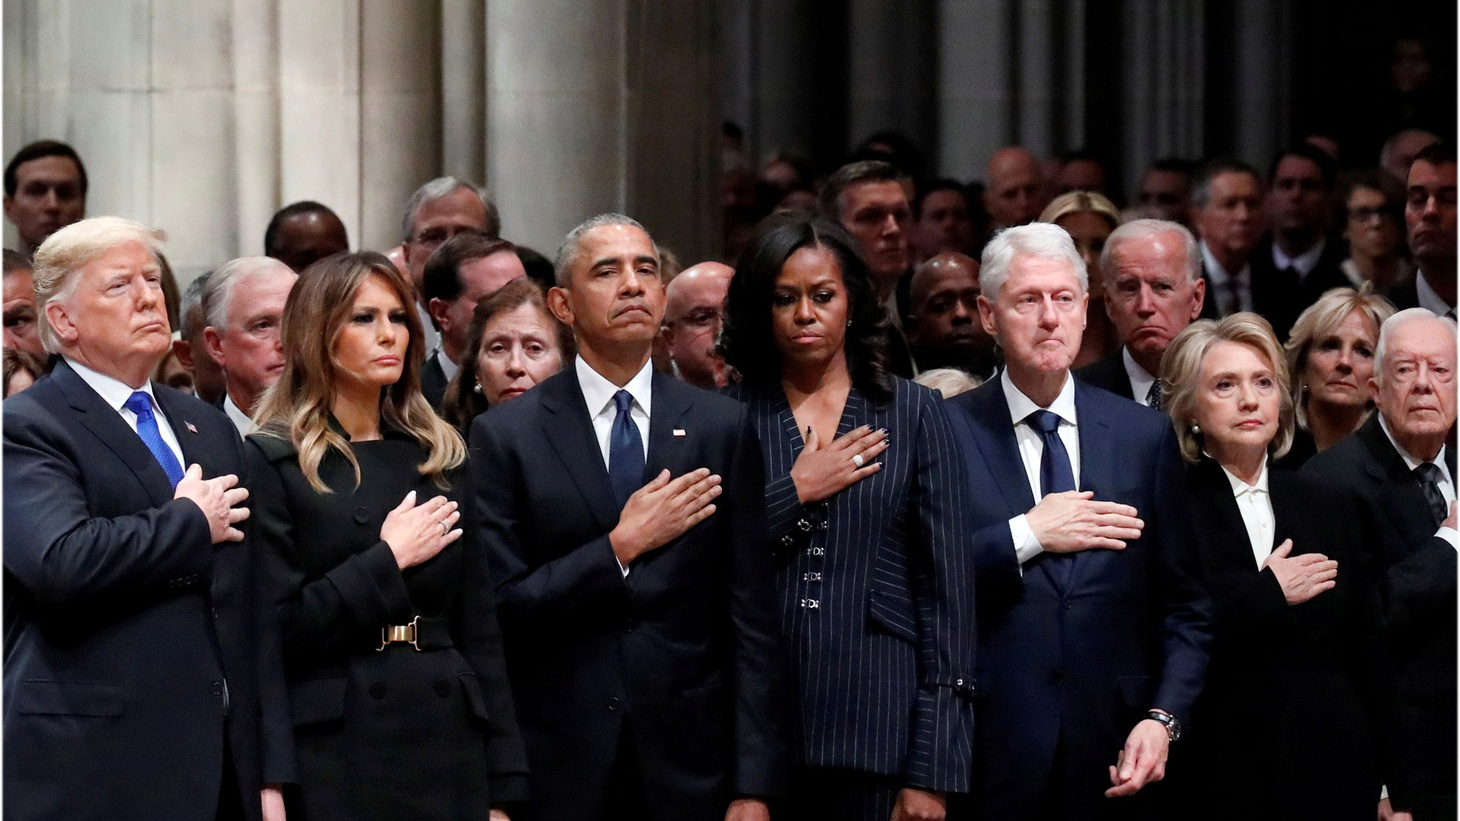 U.S. President Donald Trump, first lady Melania Trump, former President Barack Obama, former first lady Michelle Obama, former President Bill Clinton, former Secretary of State Hillary Clinton, former President Jimmy Carter and former first lady Rosalynn Carter participate in the State Funeral for former President George H.W. Bush, at the National Cathedral, Wednesday, Dec. 5, 2018 in Washington.